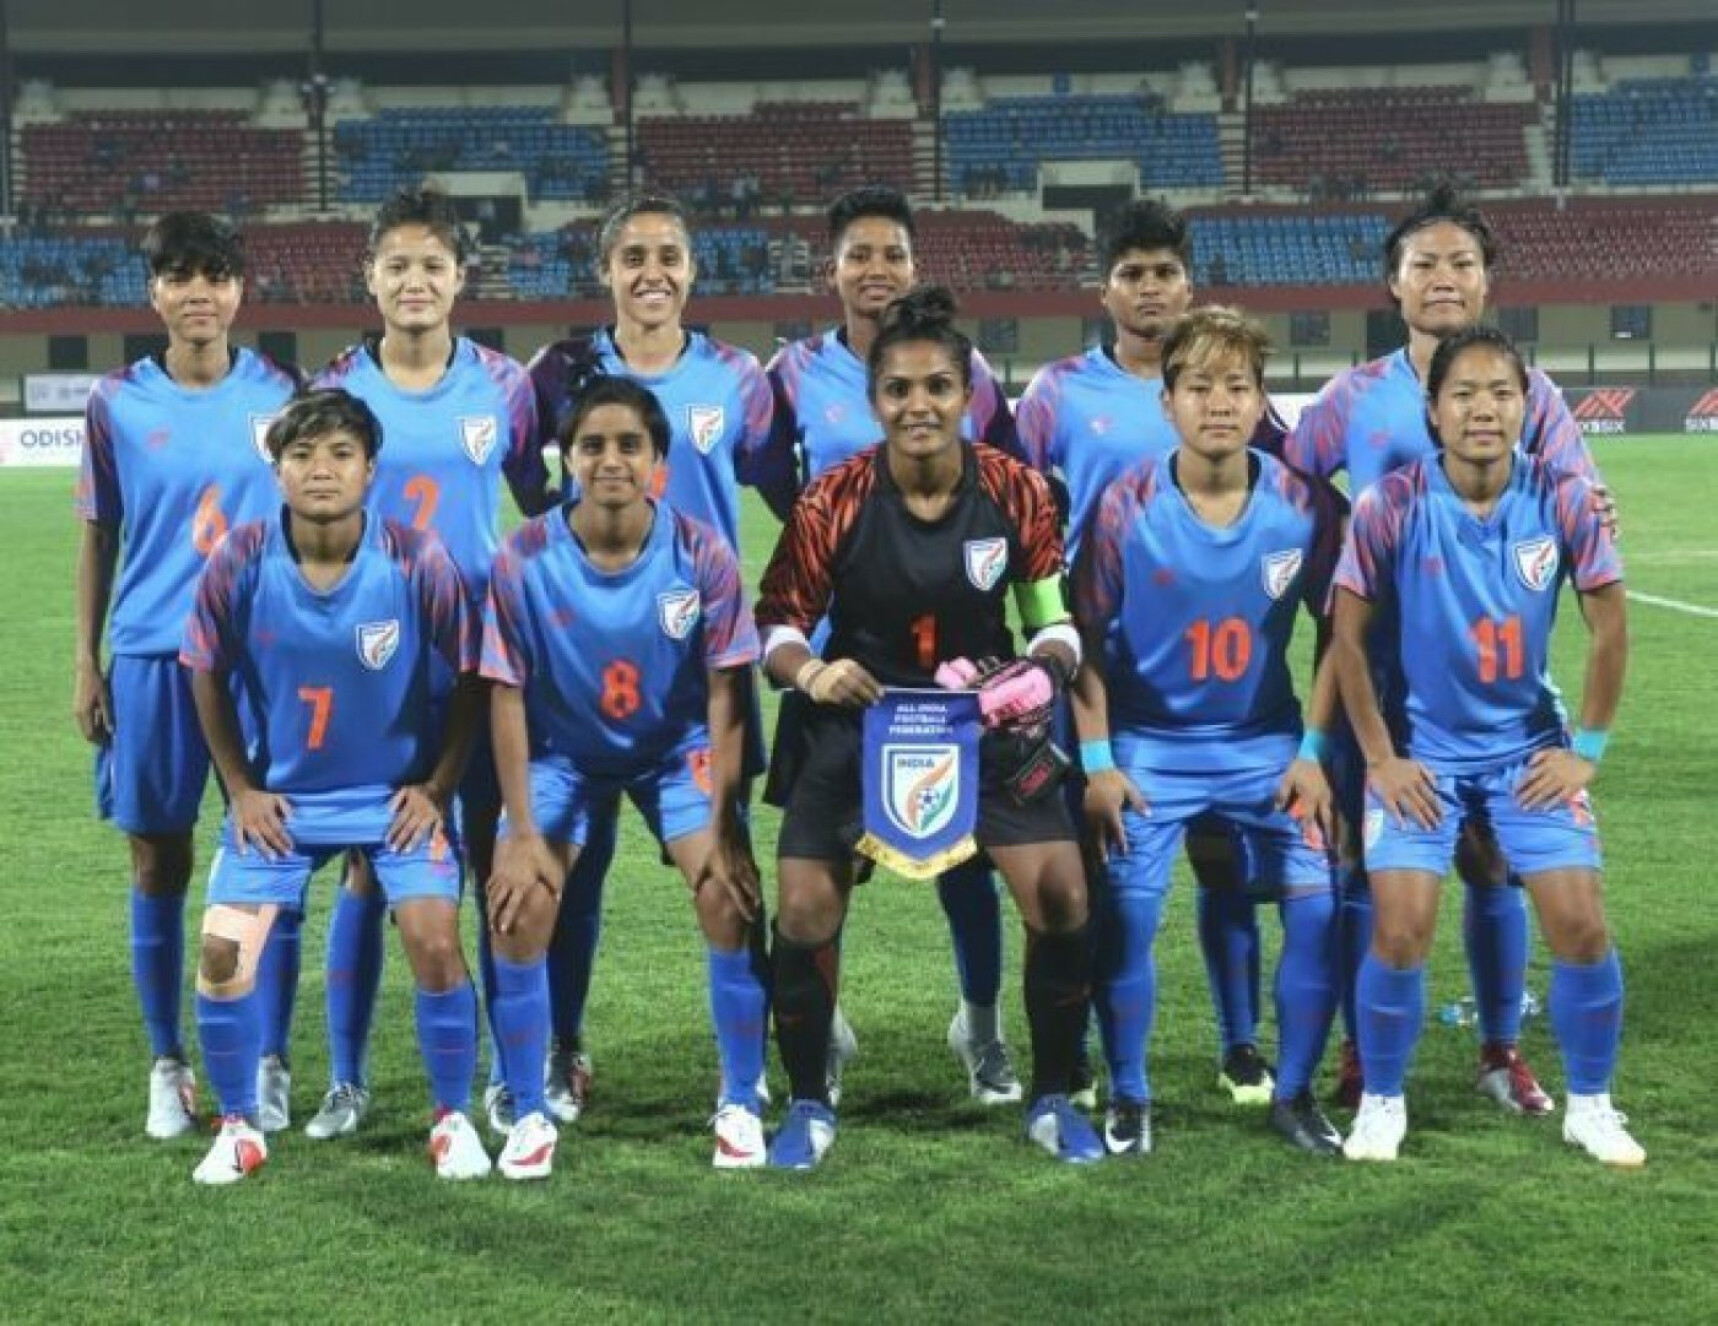 2020 Women's football Olympics Qualifiers: India draw alongside Myanmar, Indonesia.